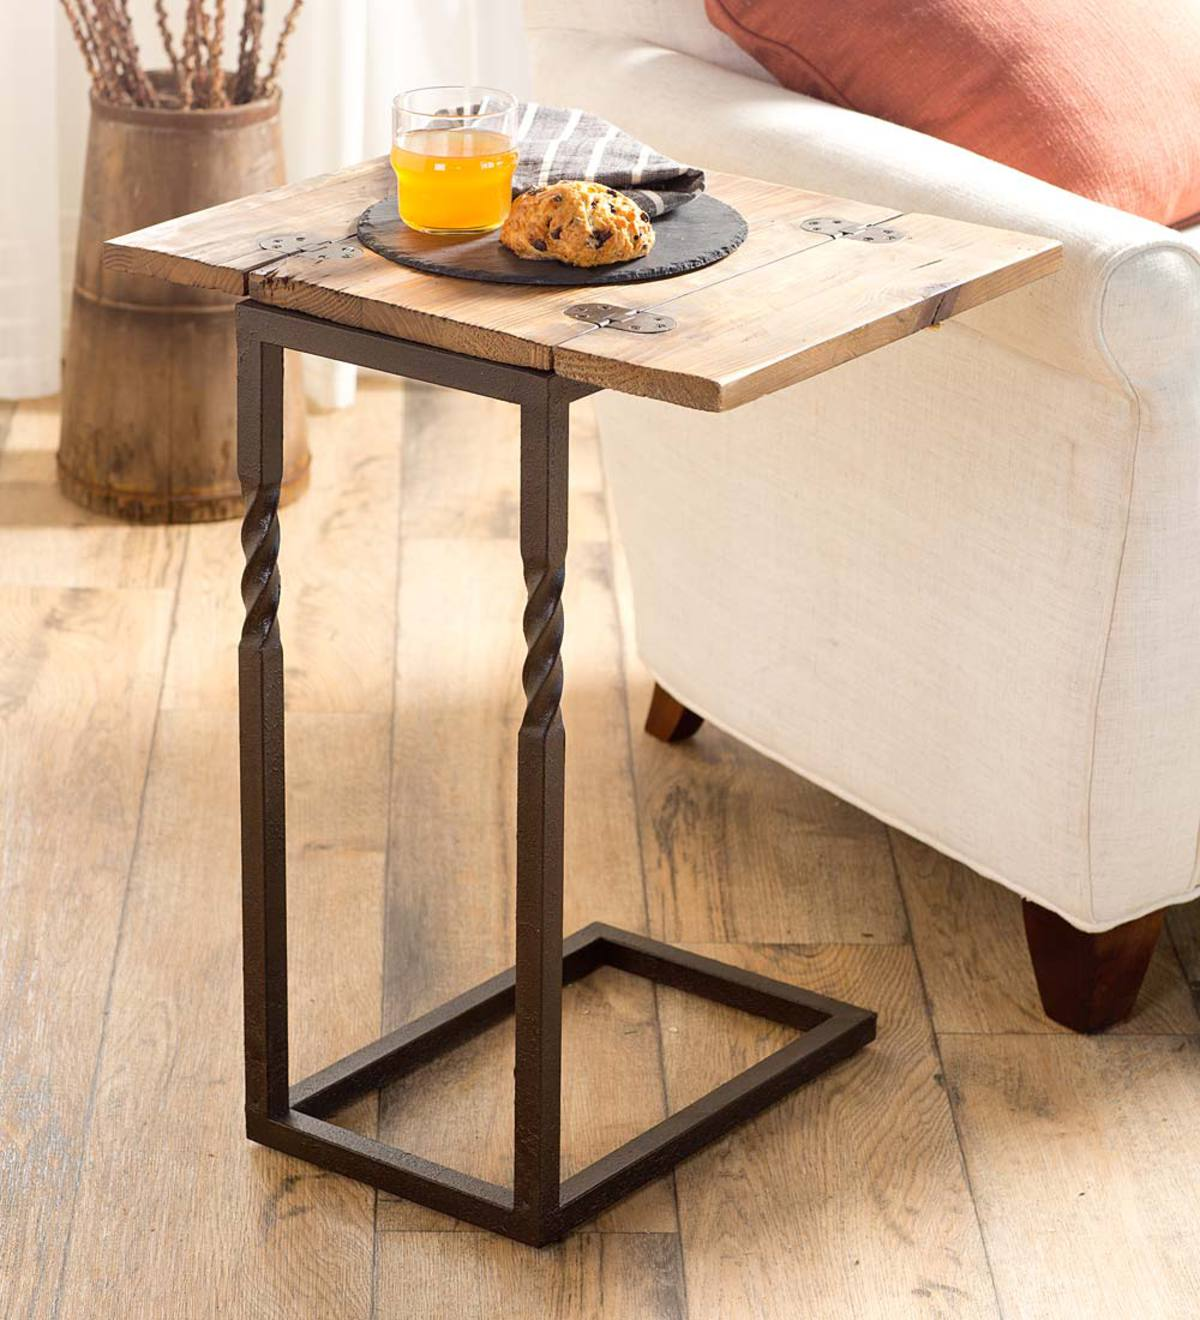 Deep Creek Pull-Up Table in Rustic Wood and Metal